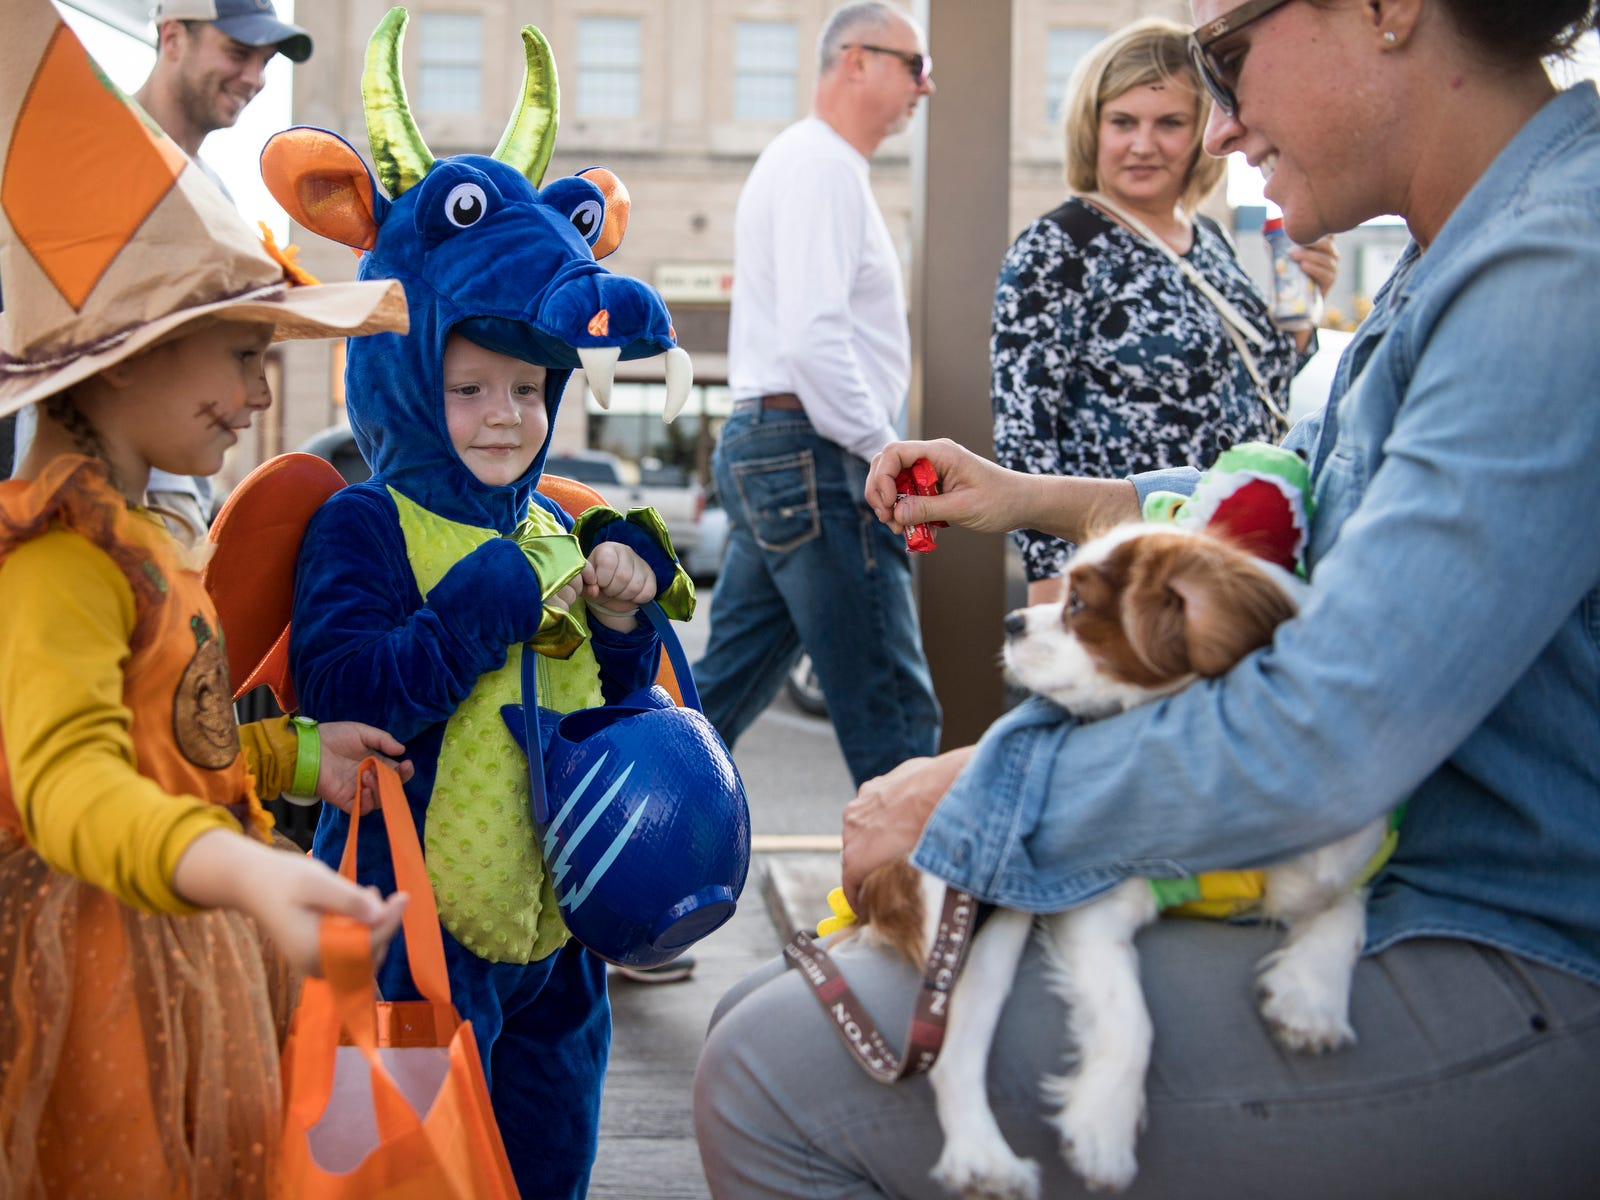 Lindsay Locasto of the Downtown Henderson Partnership, from right, and her dog Charley hand out candy to Rhett Abbot, 2, and Harlow Burke, 4, during the Trick-or-Treat event at the Central Business District in downtown Henderson, Ky., Tuesday, Oct. 30, 2018.